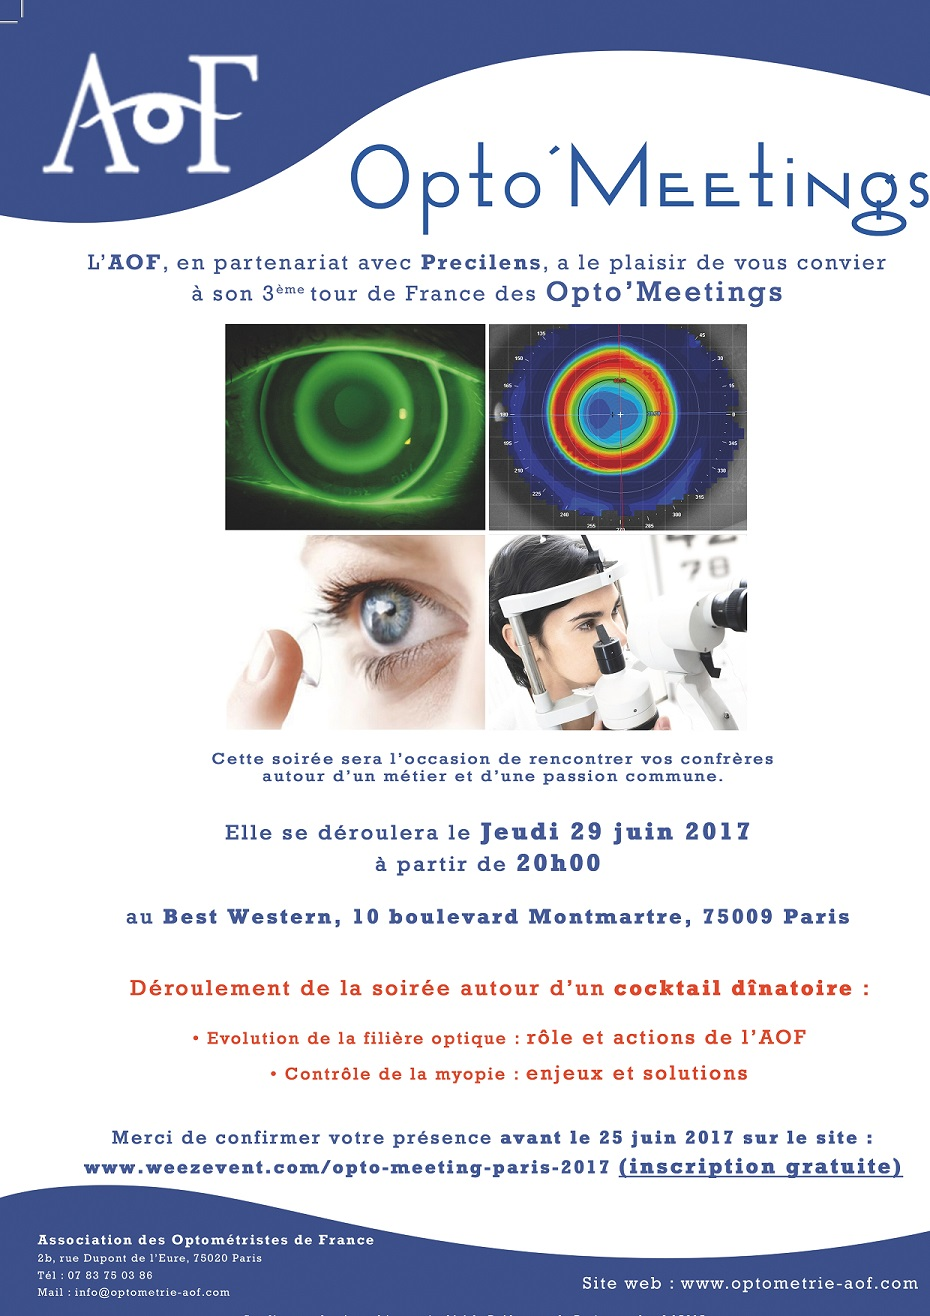 OPTO'MEETING PARIS, INSCRIPTION GRATUITE.